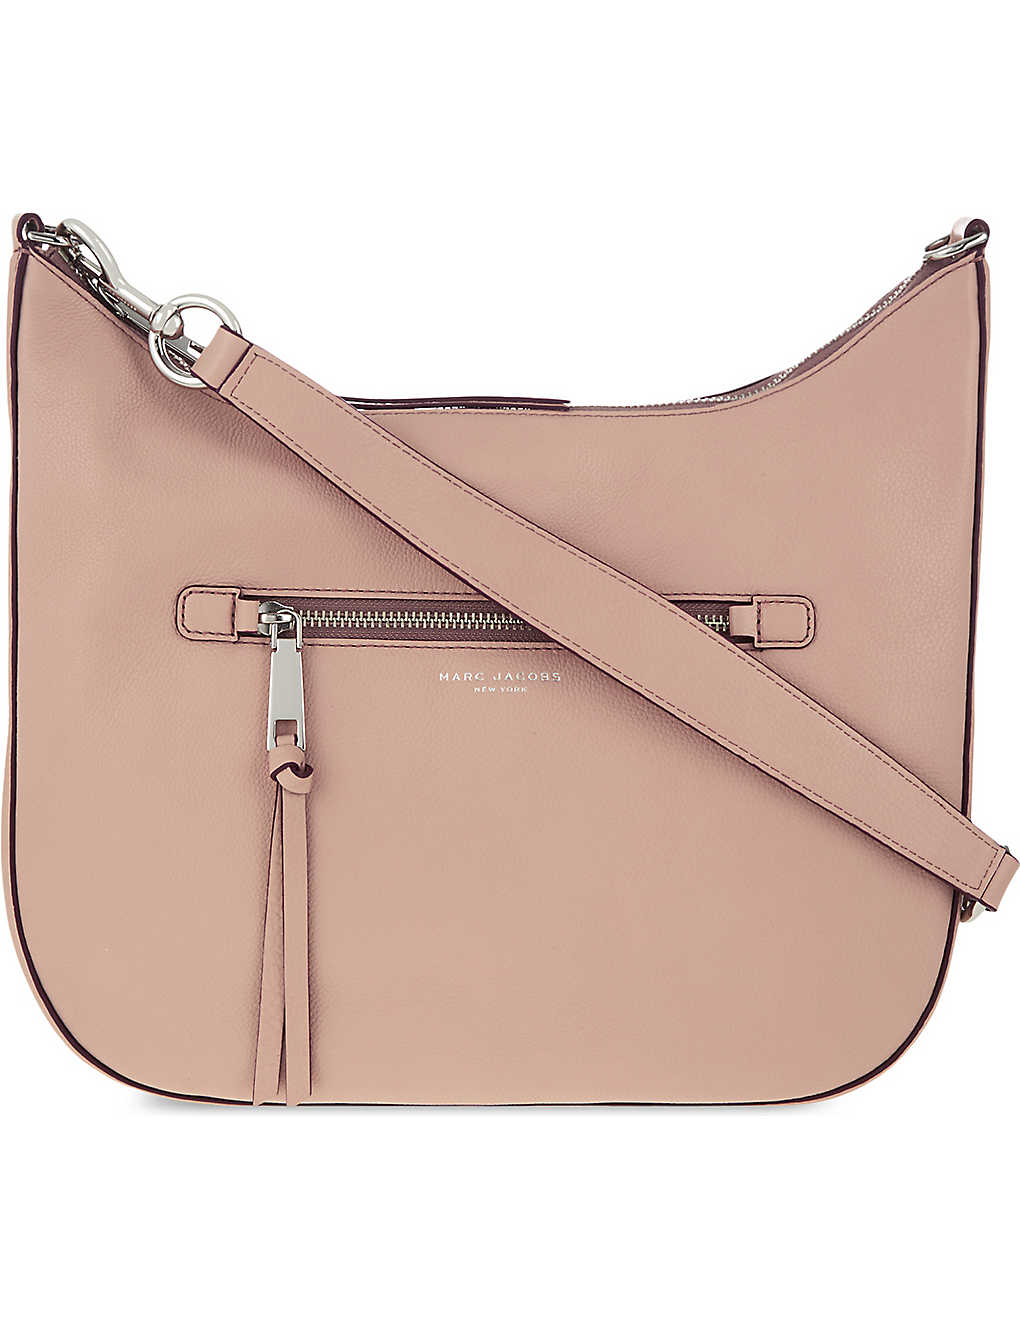 14ca6a5ea MARC JACOBS - Recruit leather hobo shoulder bag | Selfridges.com